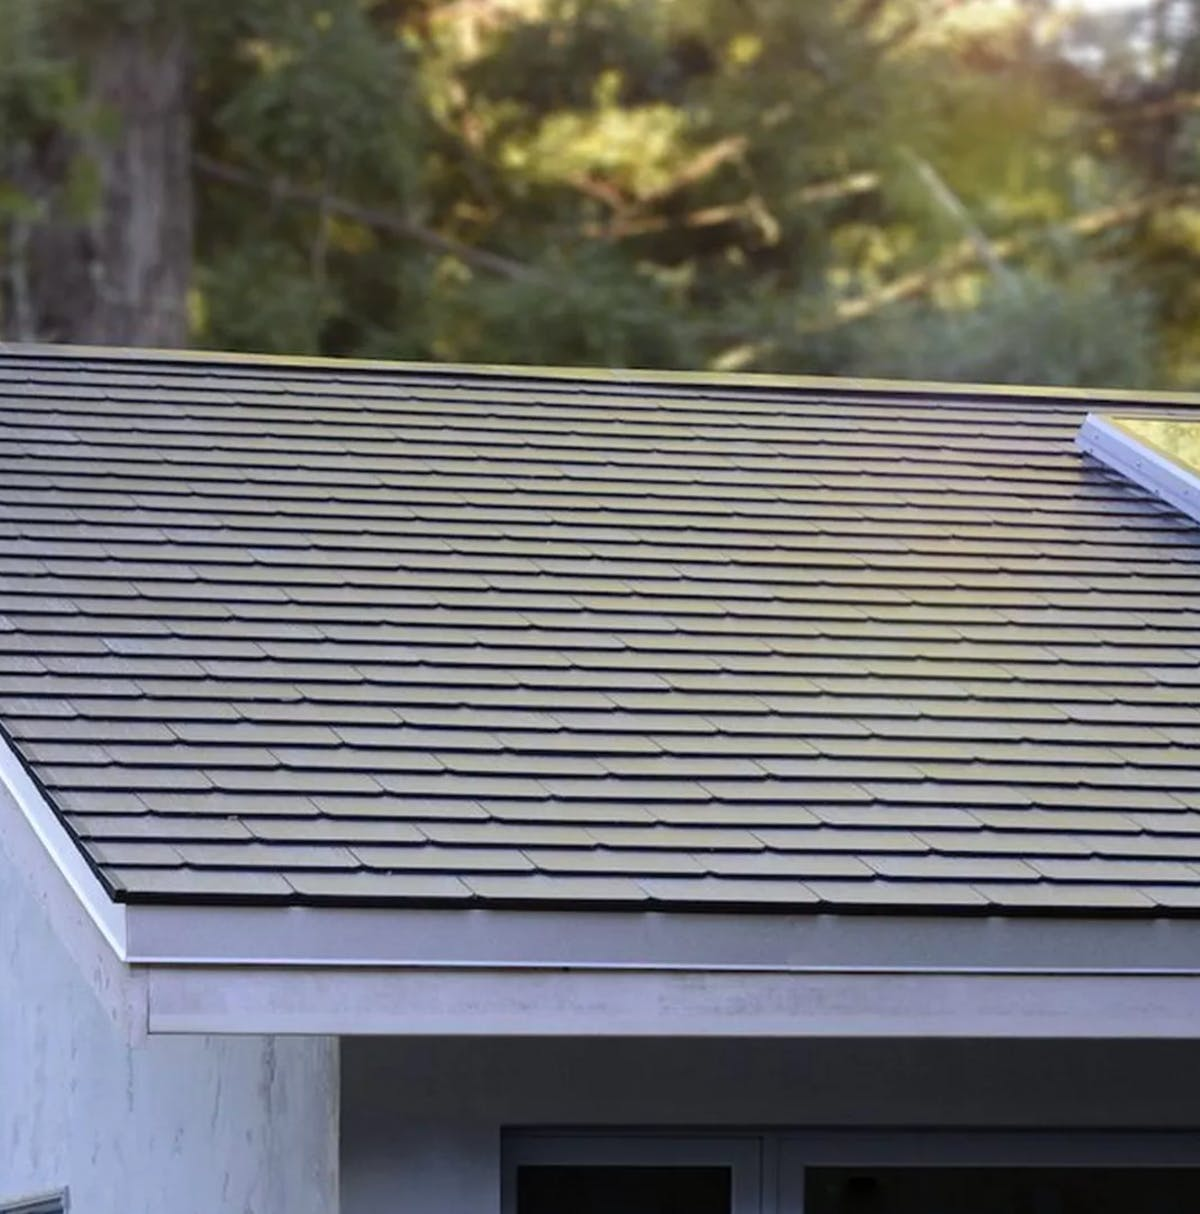 Tesla Solar Roof: How the Price Stacks Up Against Energy Savings